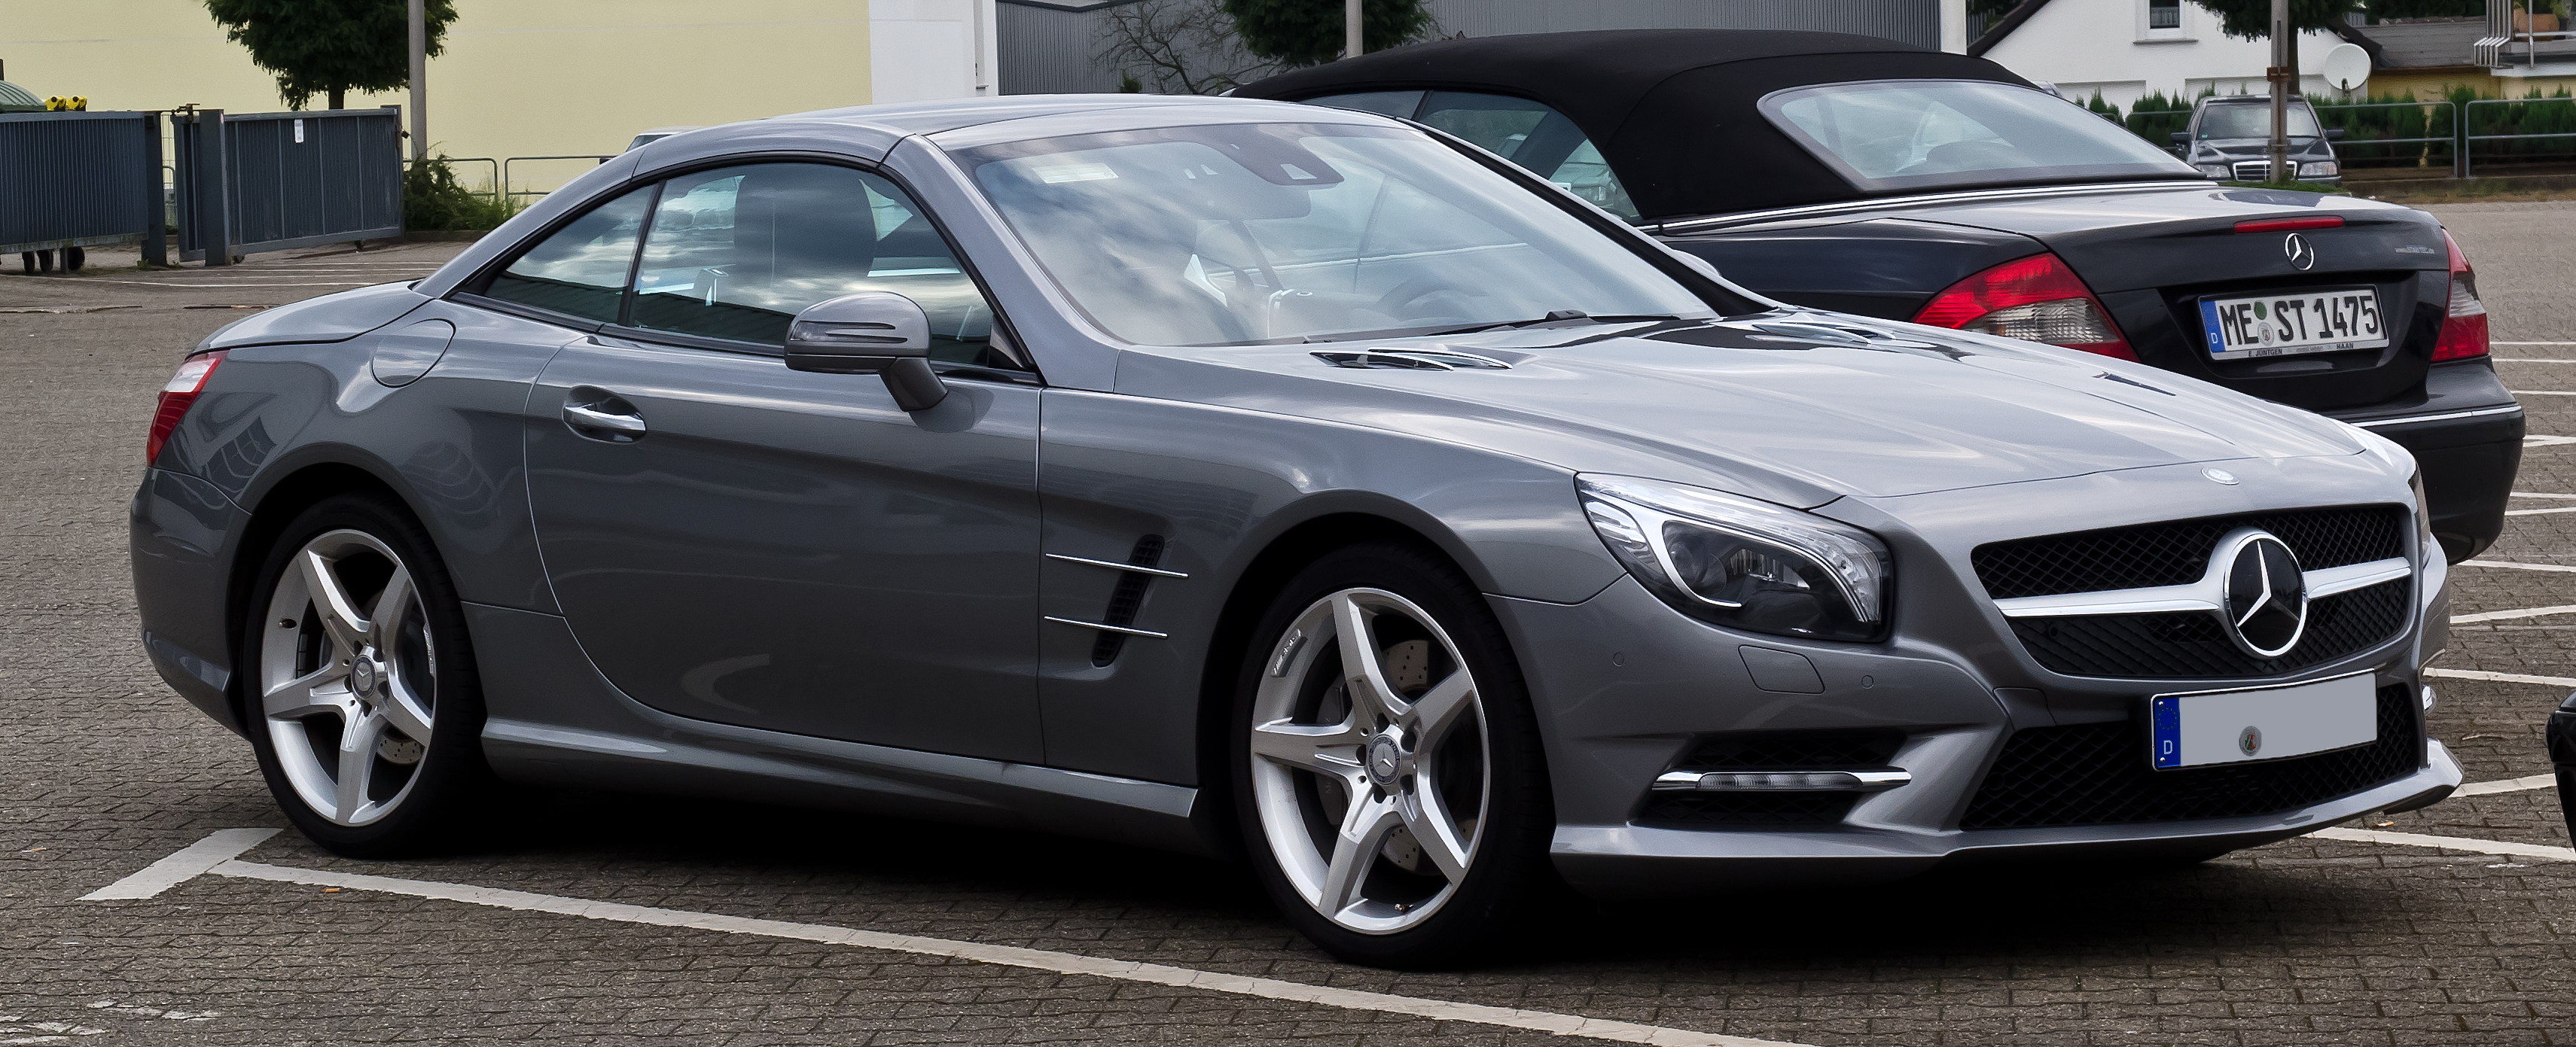 File Mercedes Benz Sl 500 Blueefficiency Sport Paket Amg